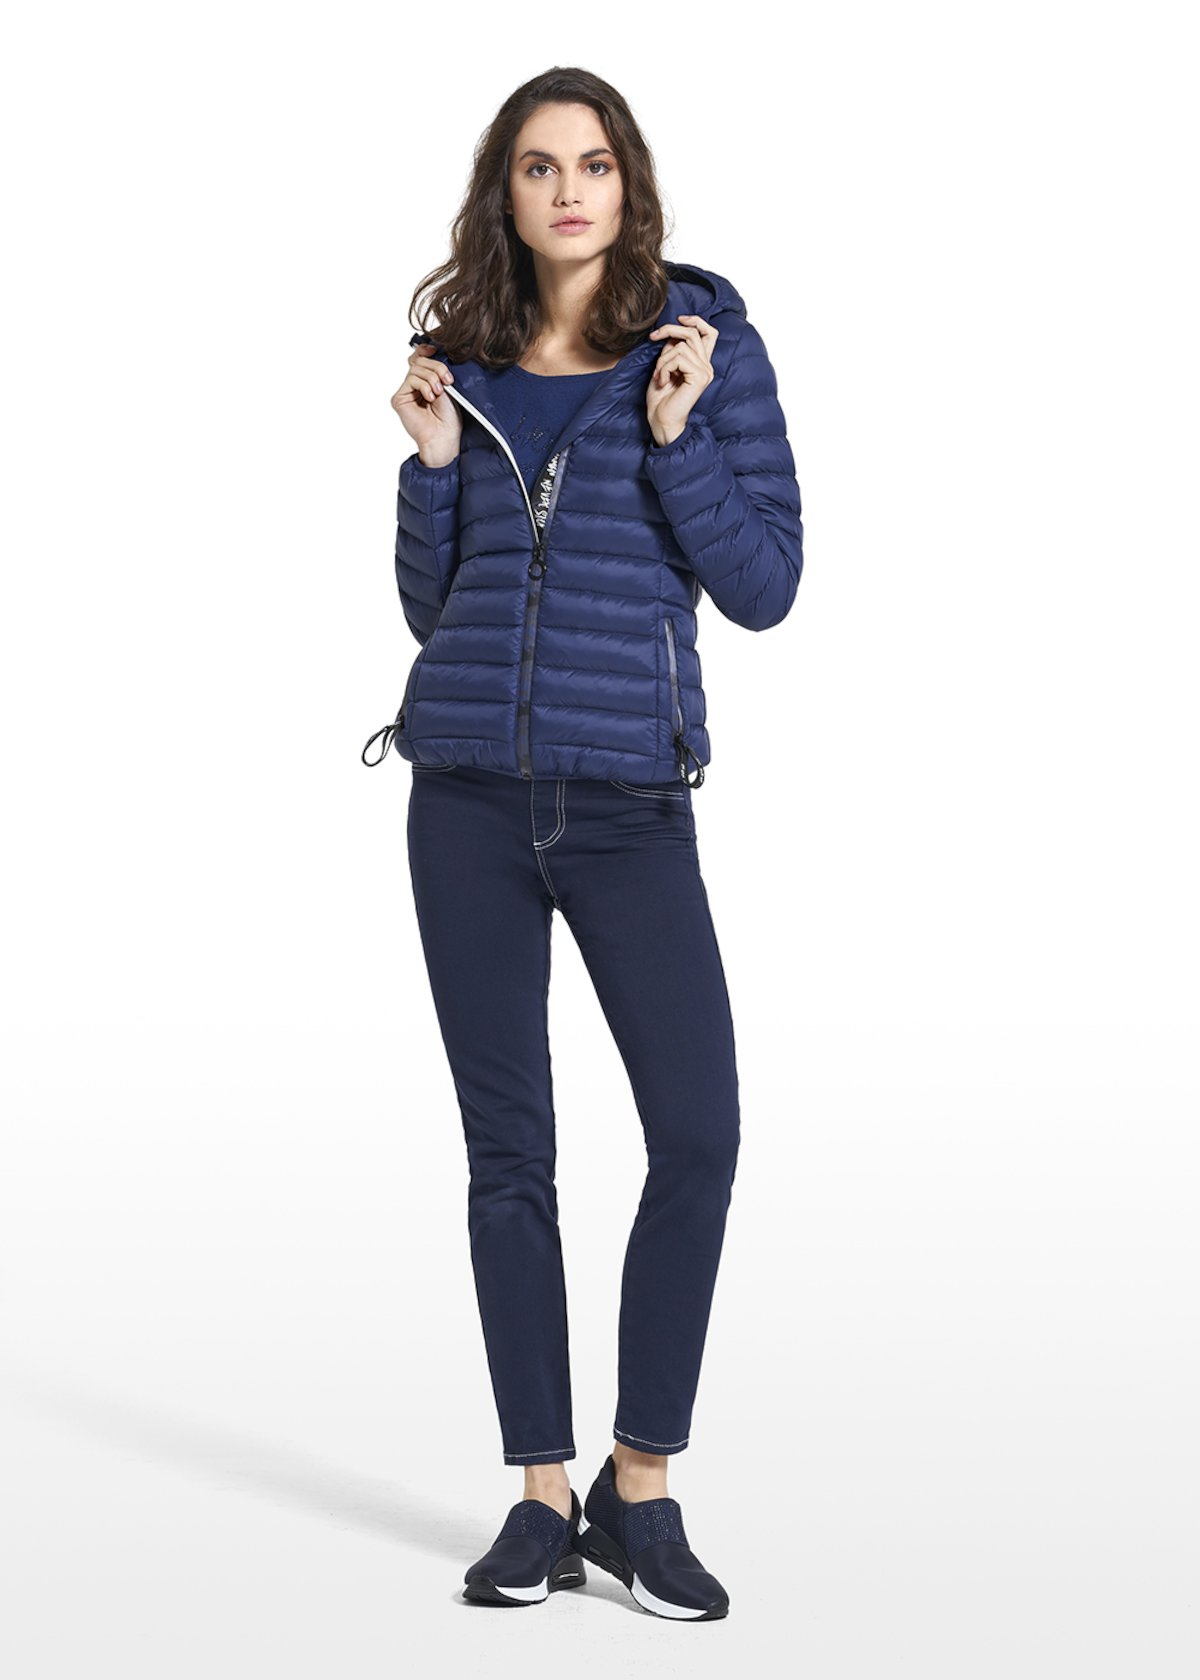 Piumino in nylon Phillis con cappuccio e zip centrale - Medium Blue - Donna - Immagine categoria